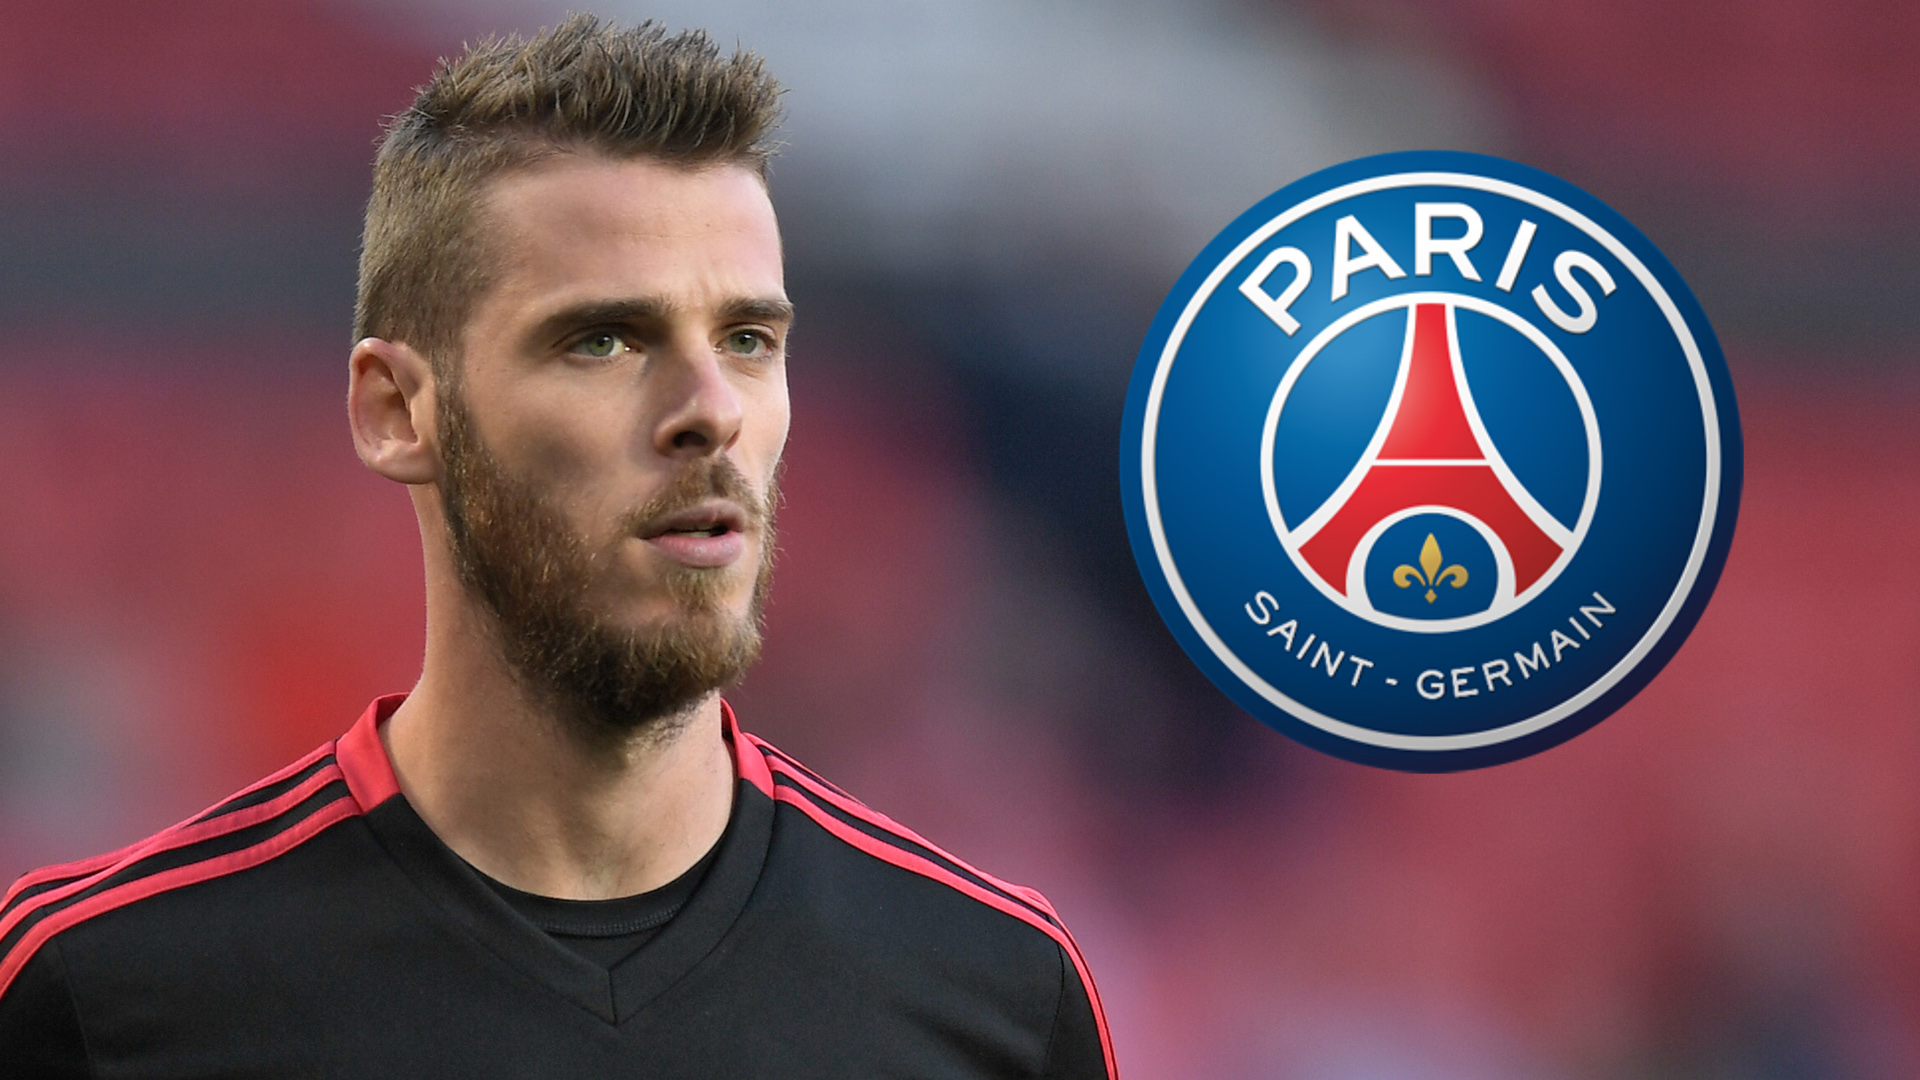 Transfer news and rumours LIVE: PSG monitor De Gea situation